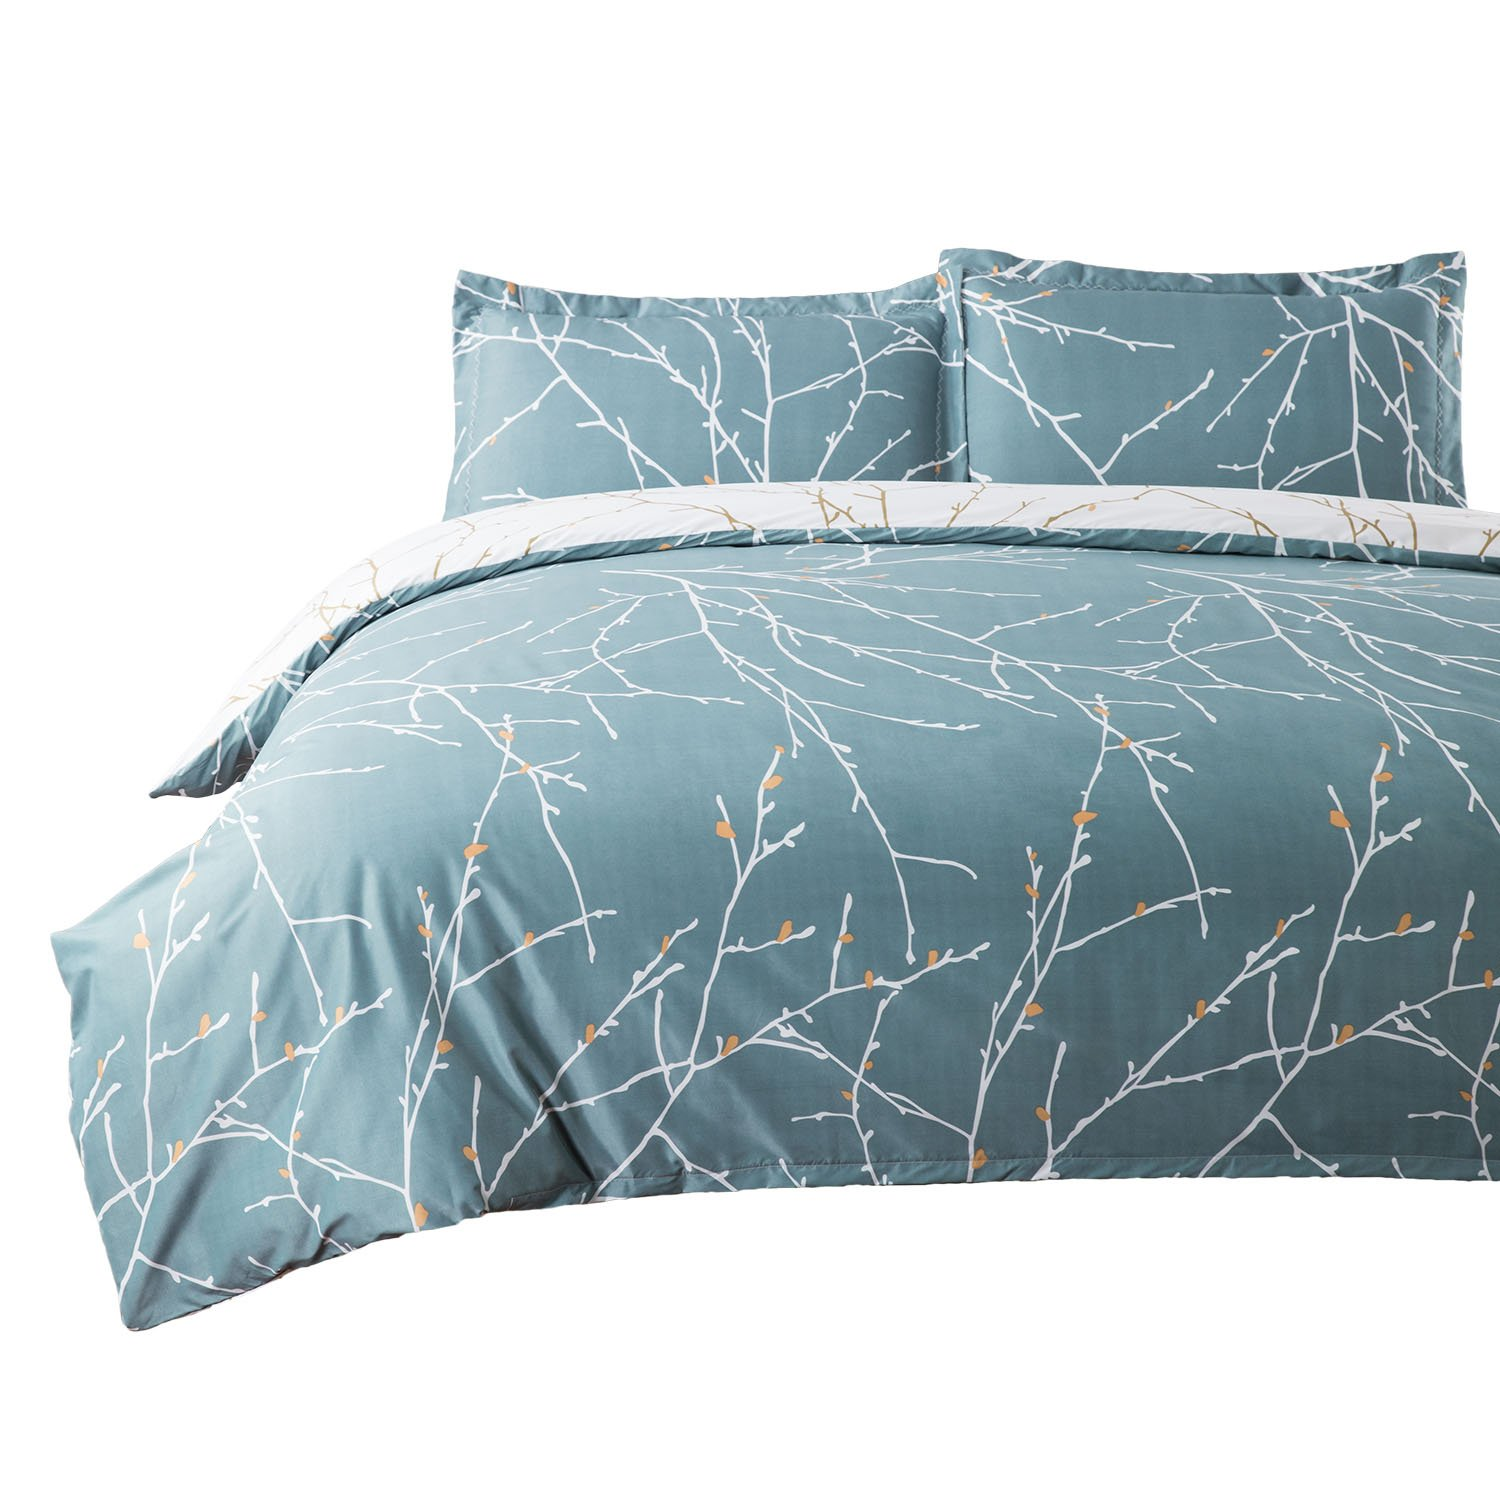 Bedsure Duvet Cover Set with Zipper Closure-Branch and Plum Blue Printed Pattern,Twin (66